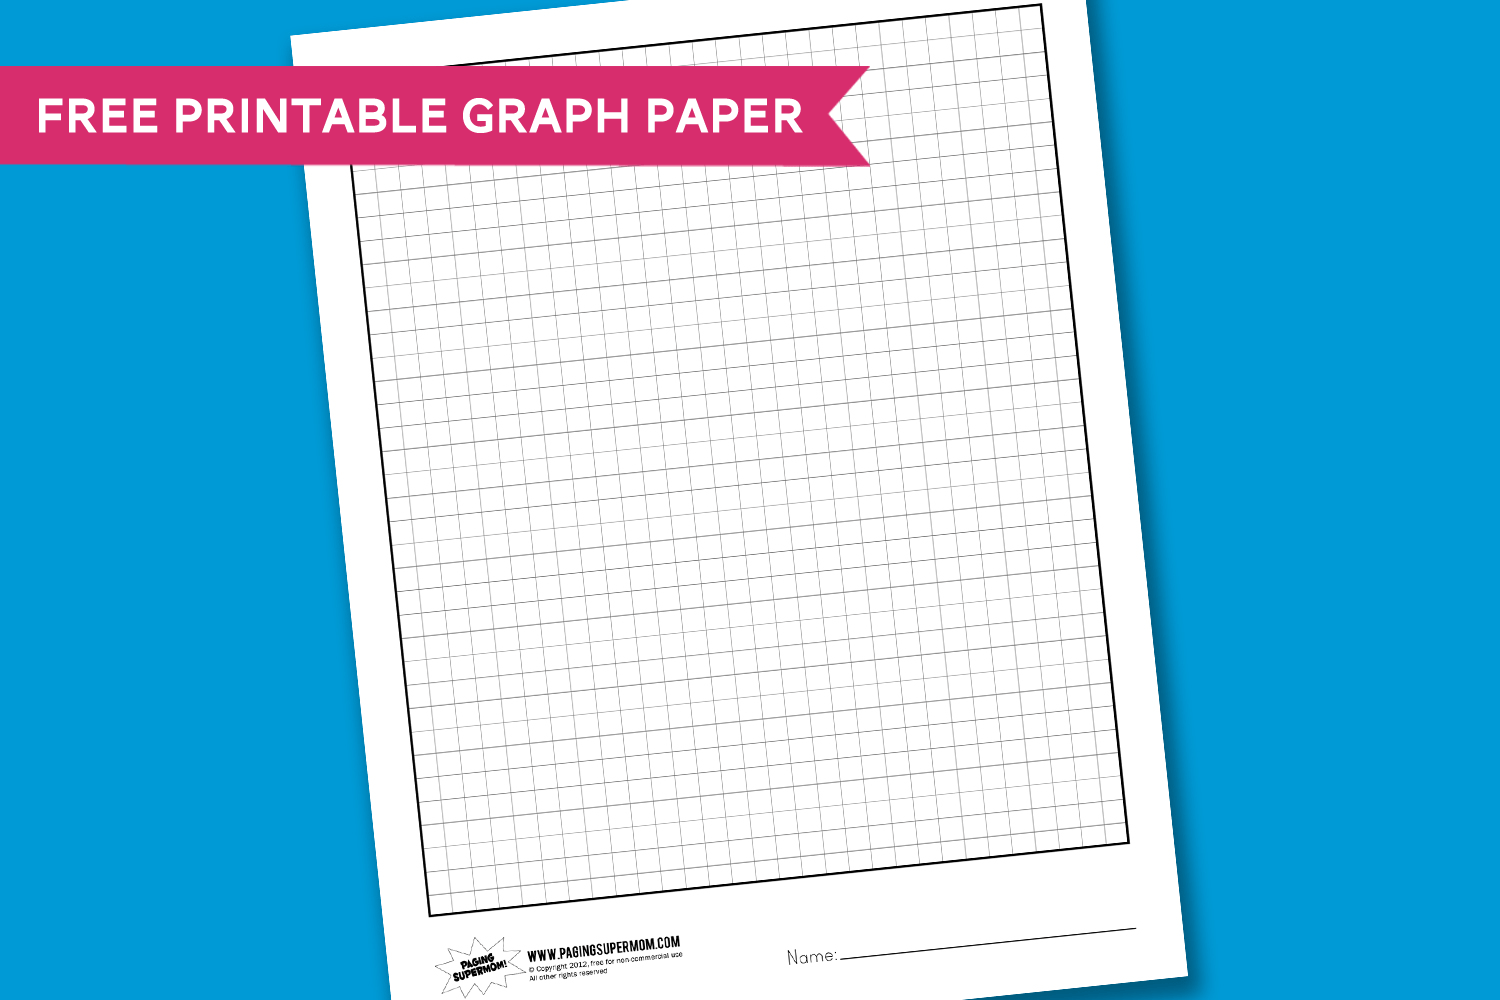 Worksheet Wednesday Graph Paper